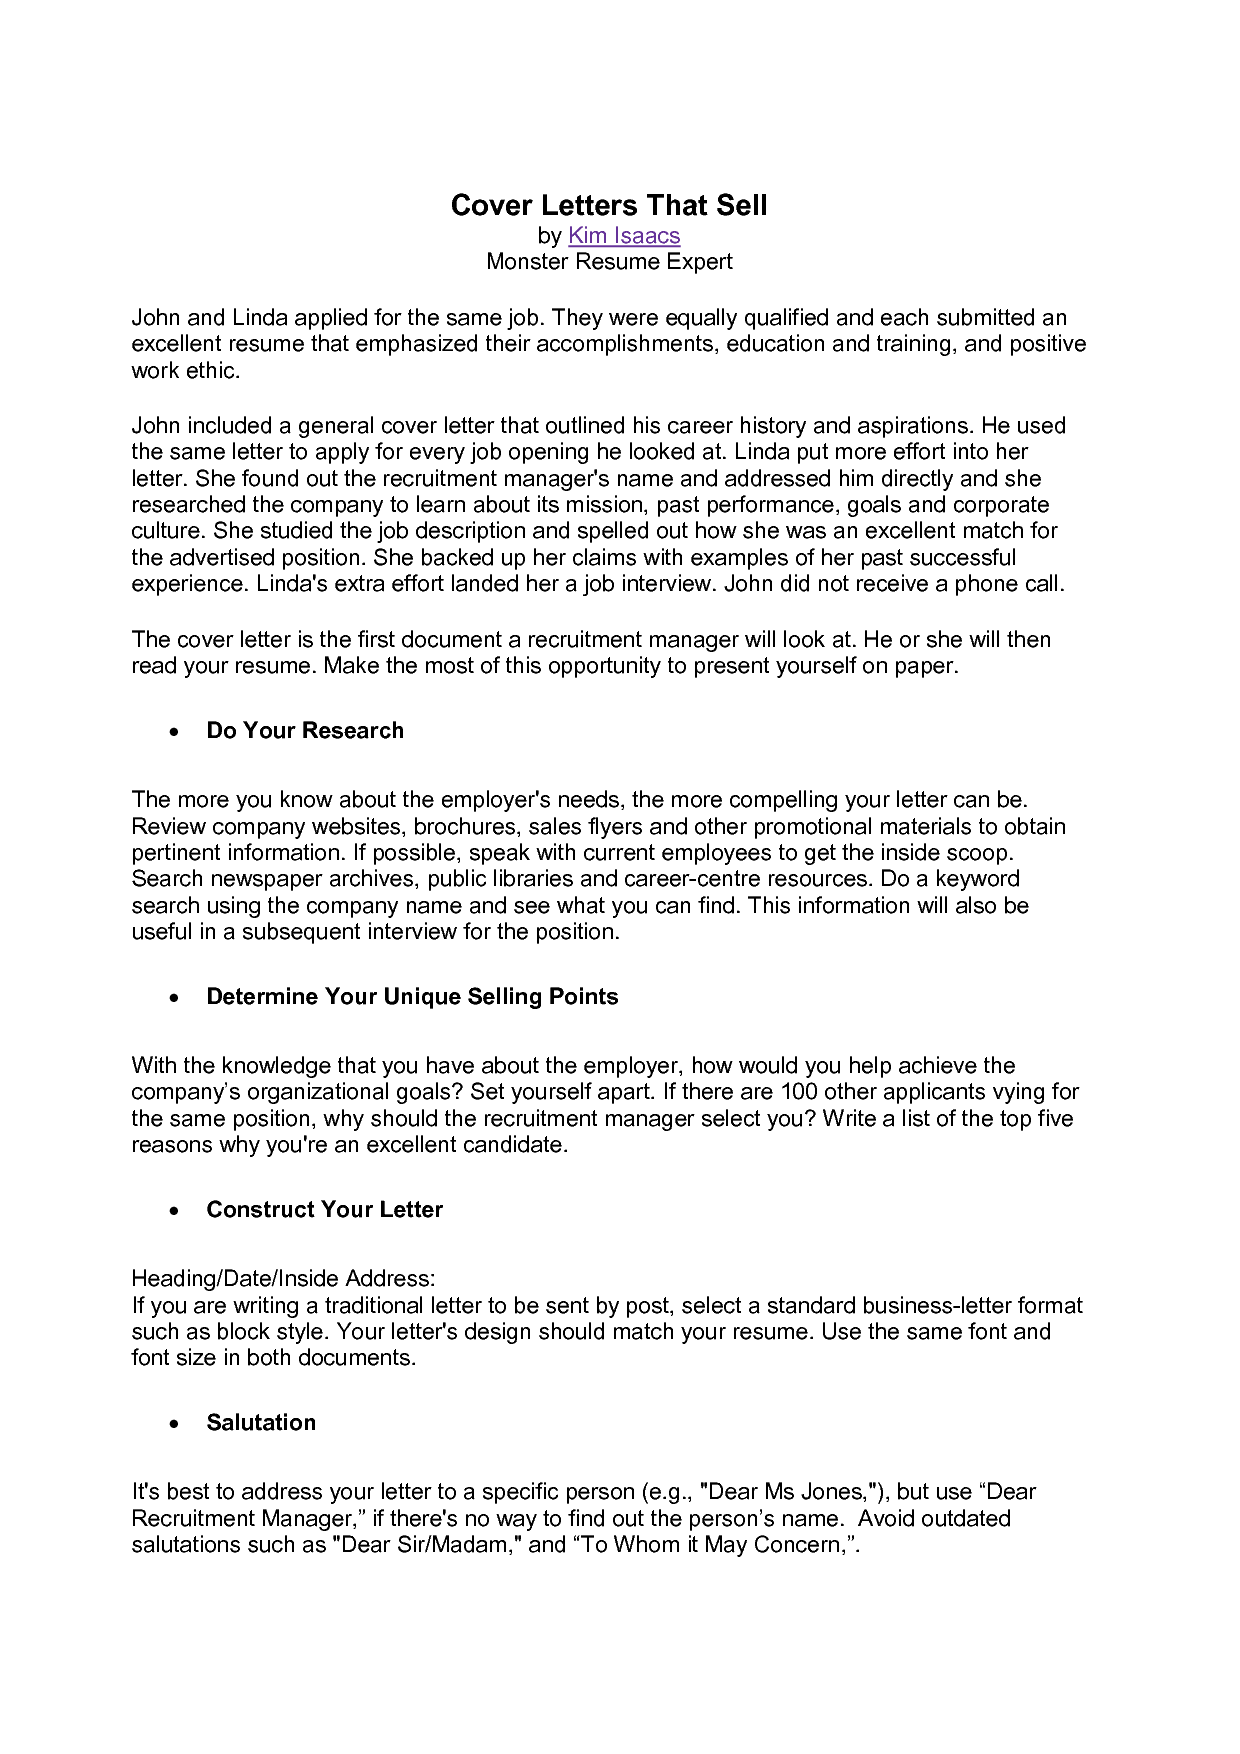 monster cover letter free download monster cover letter monster cover letter template monster